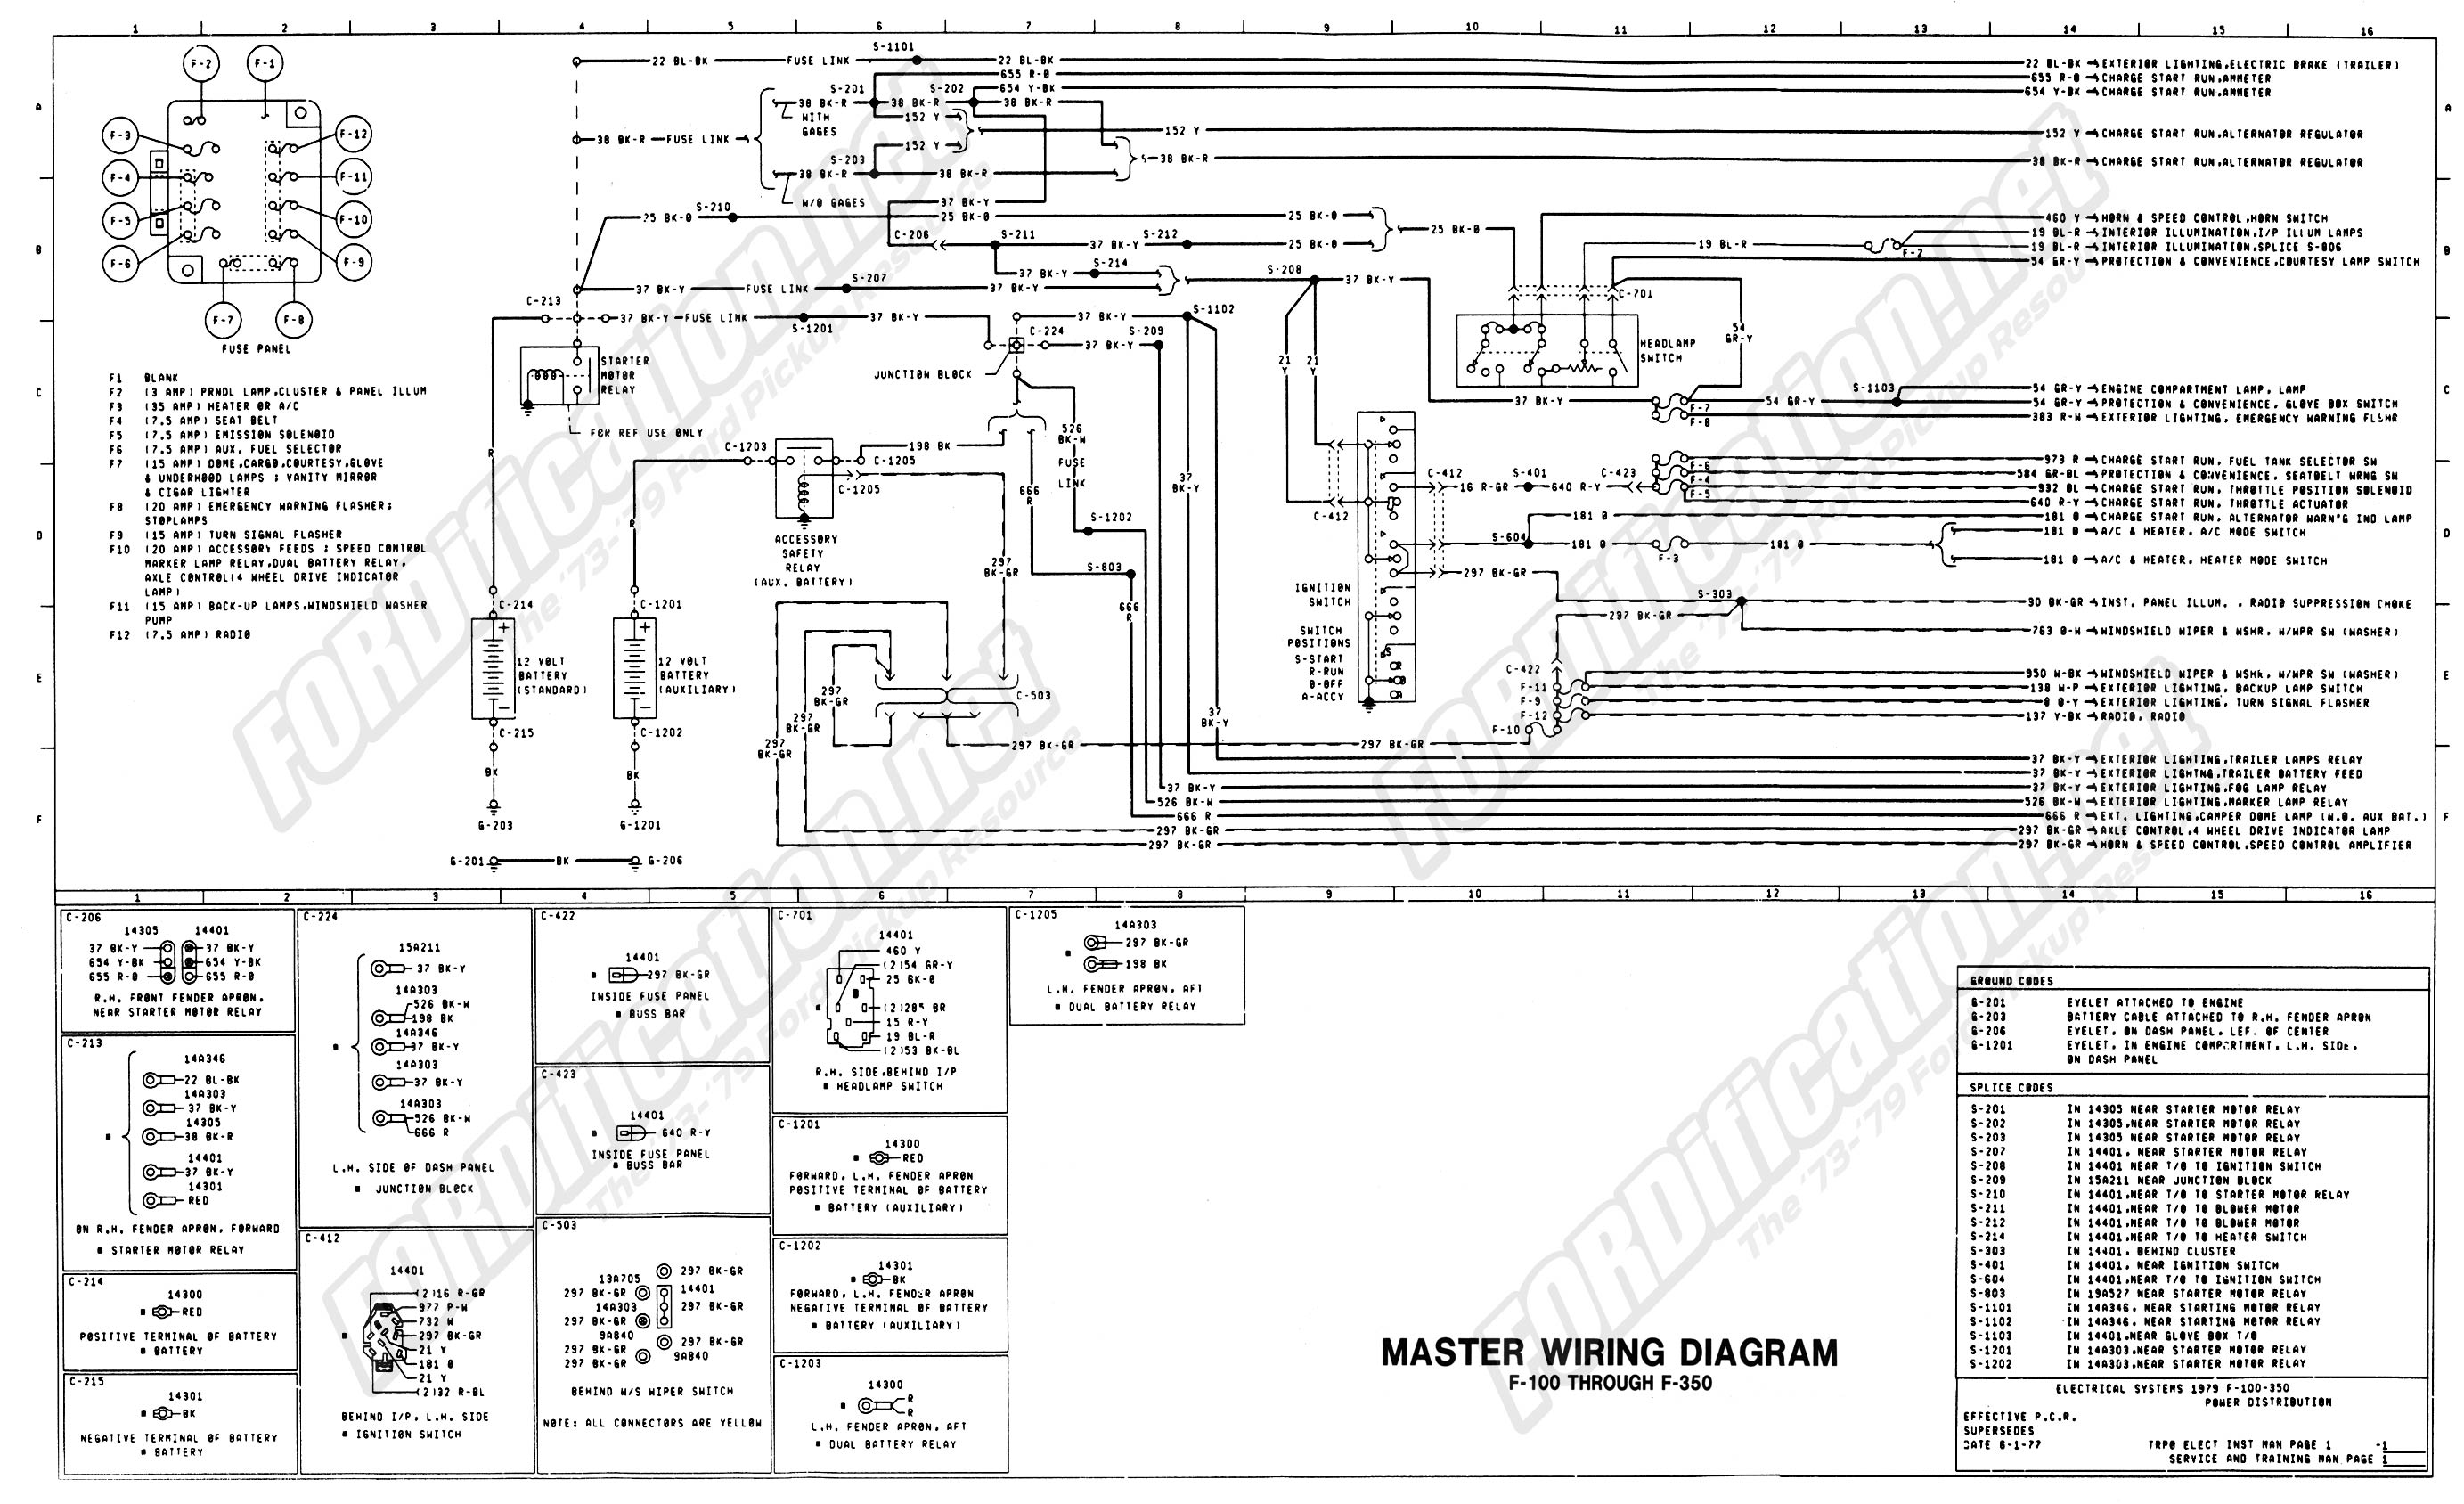 1980 f150 tail light wiring diagram wire center u2022 rh ayseesra co  1993 ford l9000 headlight wiring diagram